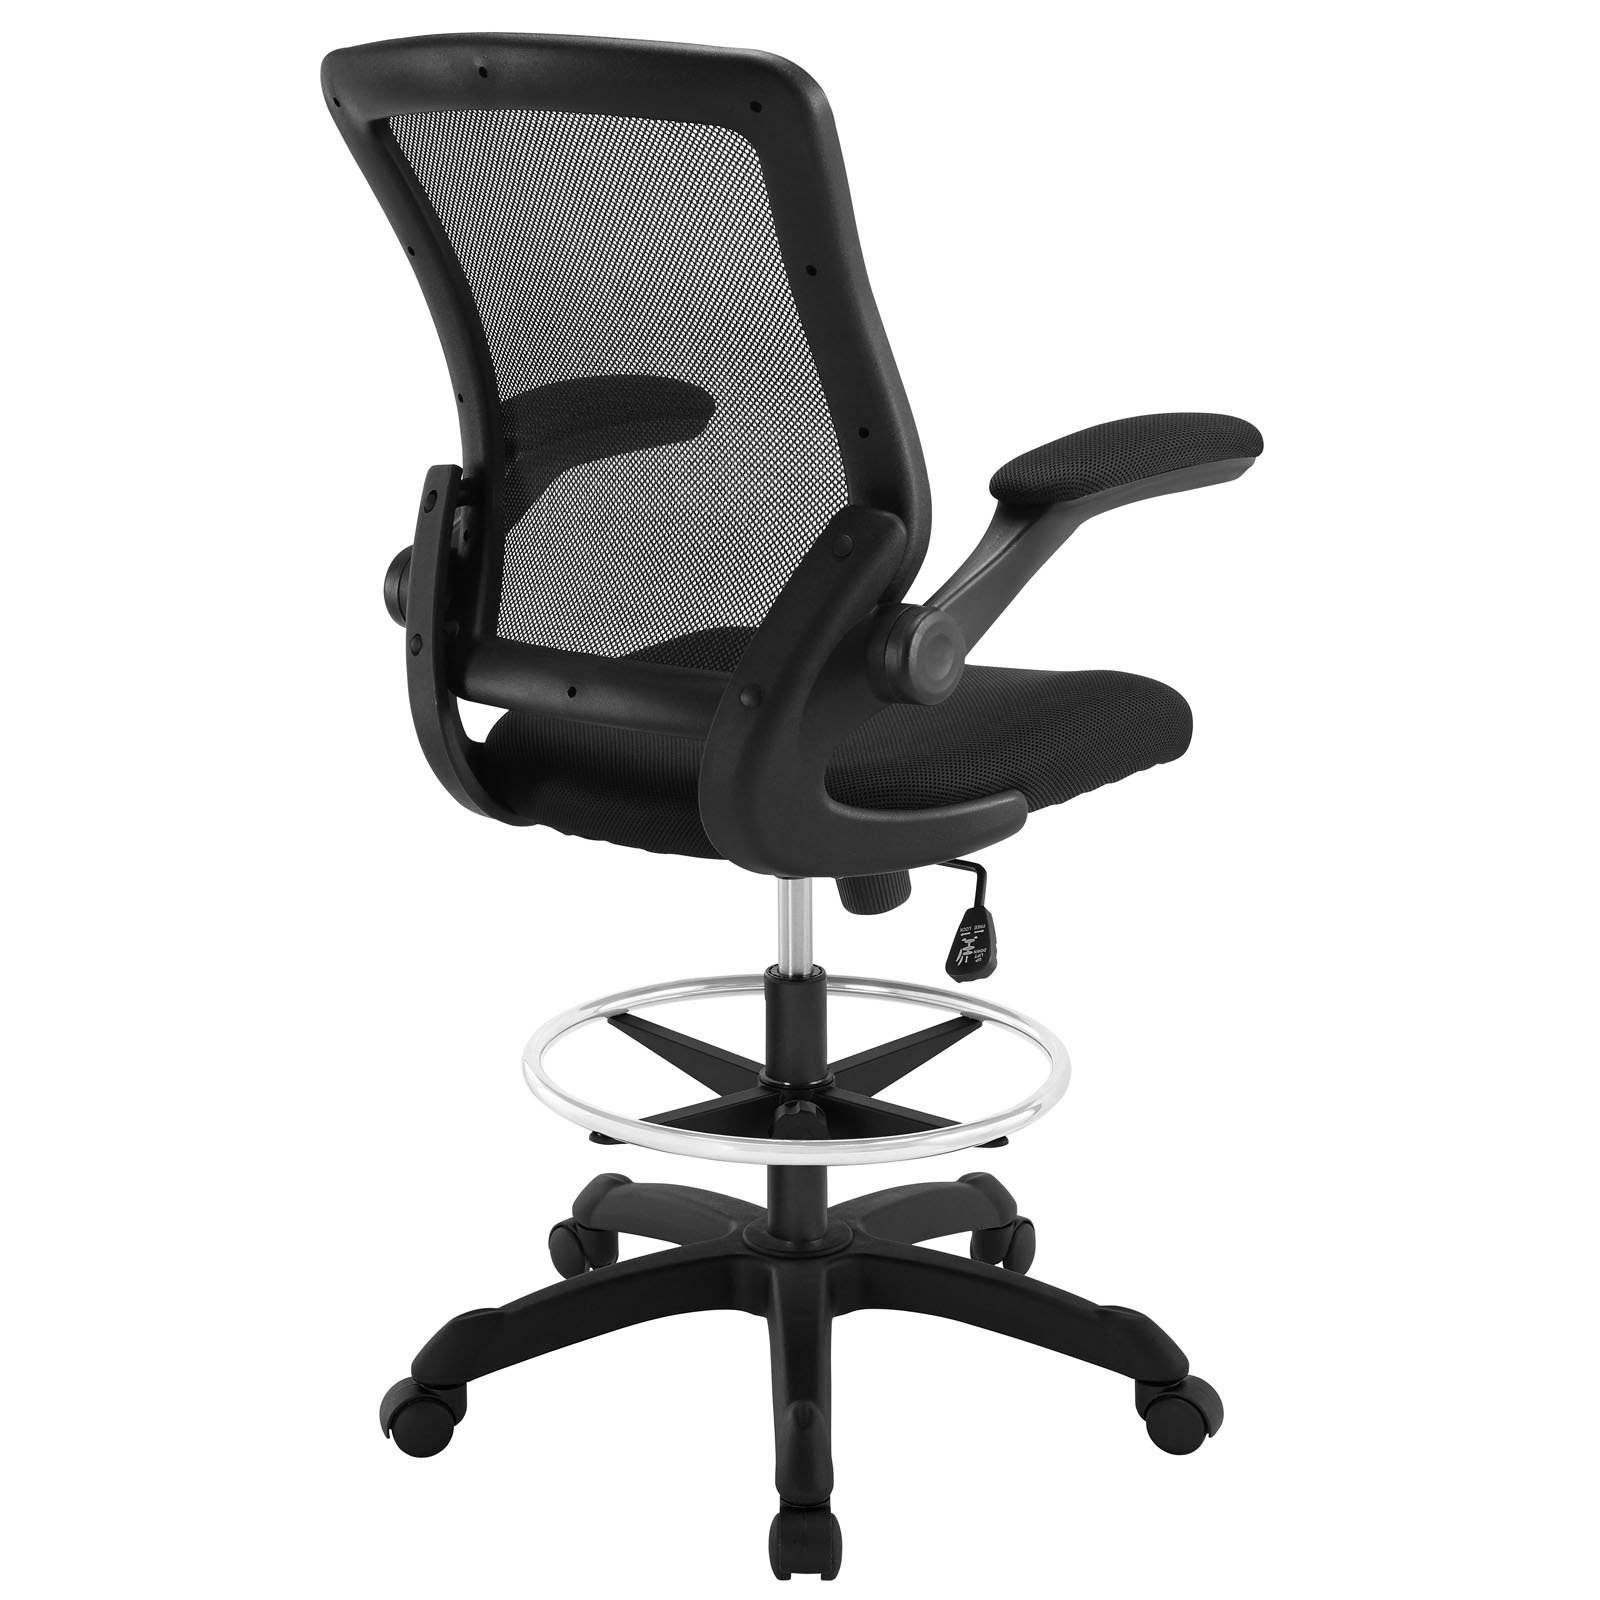 Modway Veer Drafting Stool In Black Reception Desk Chair Tall